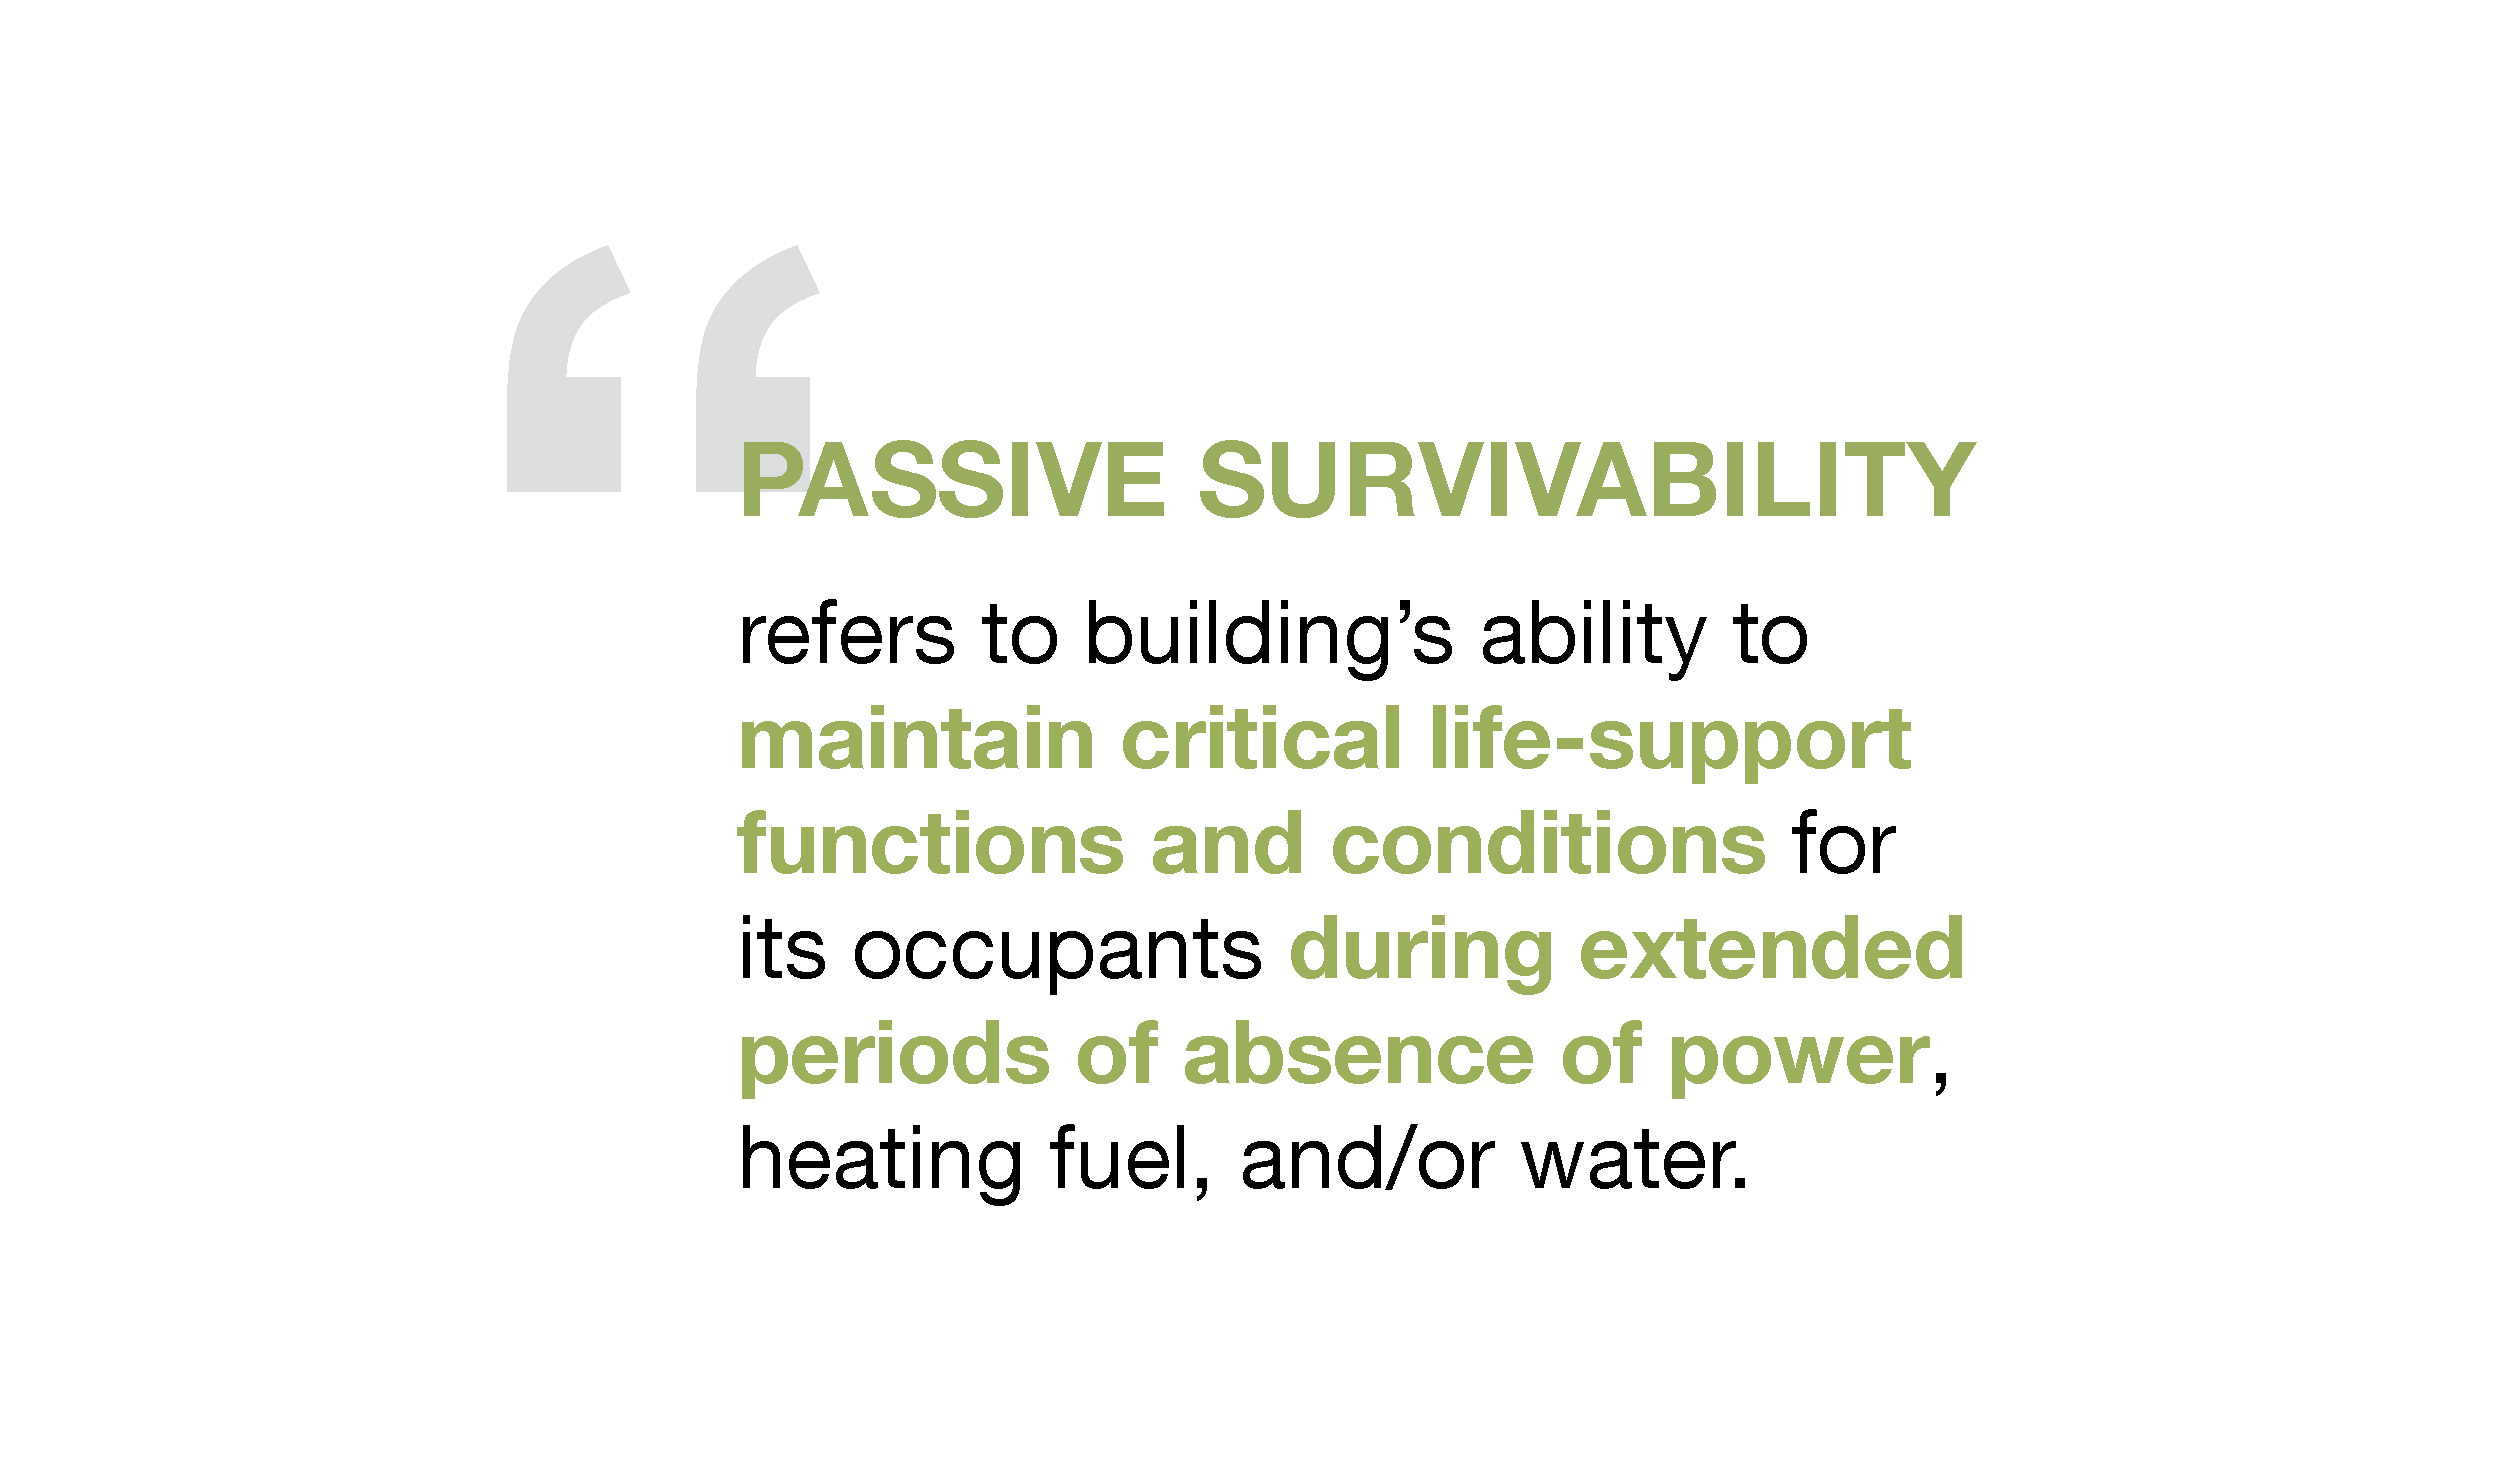 """Passive Survivability refers to a building's ability to maintain critical life-support functions and conditions for its occupants during extended periods of absence of power, heating fuel, and/or water."